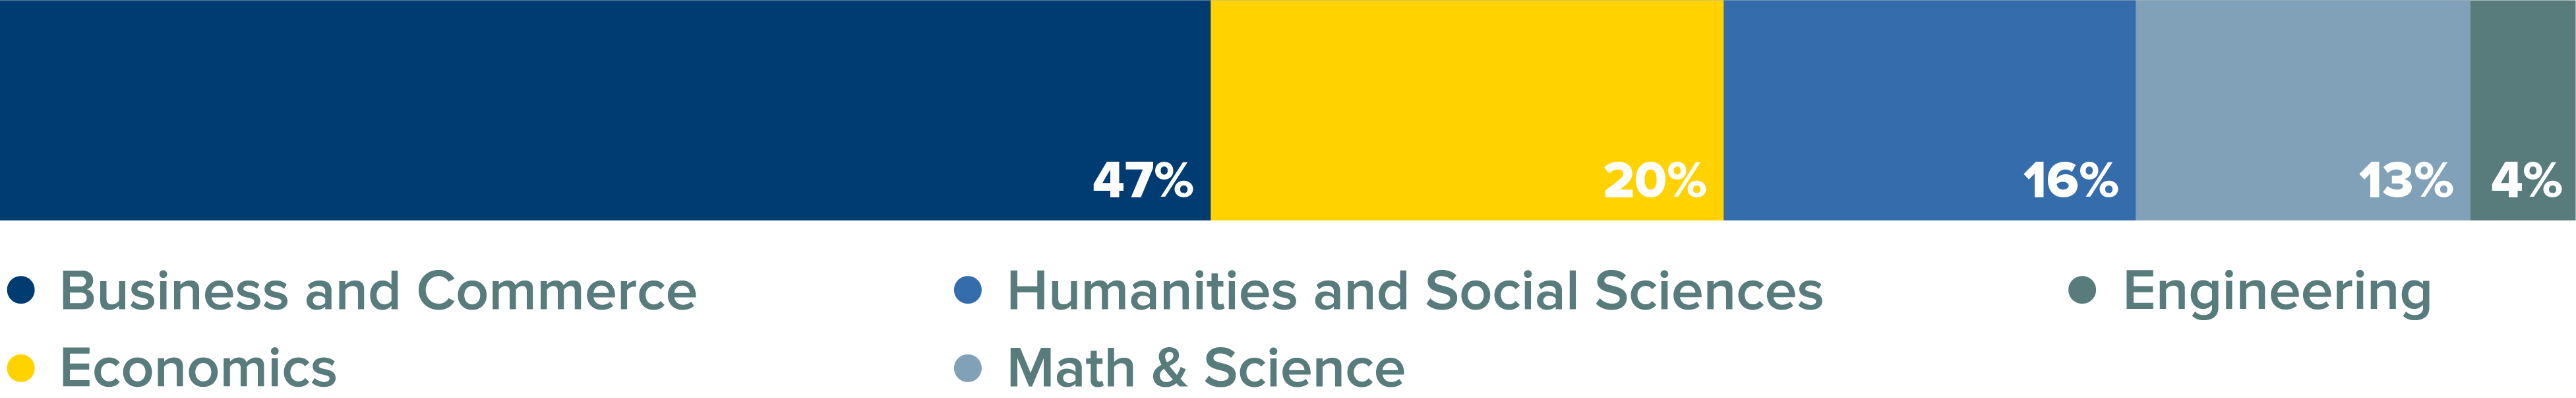 MSMA Class Percentage by Major Bar Graph. 47% business and commerce; 20% economics; 16% humanities and social sciences; 13% math and science; 4% engineering.